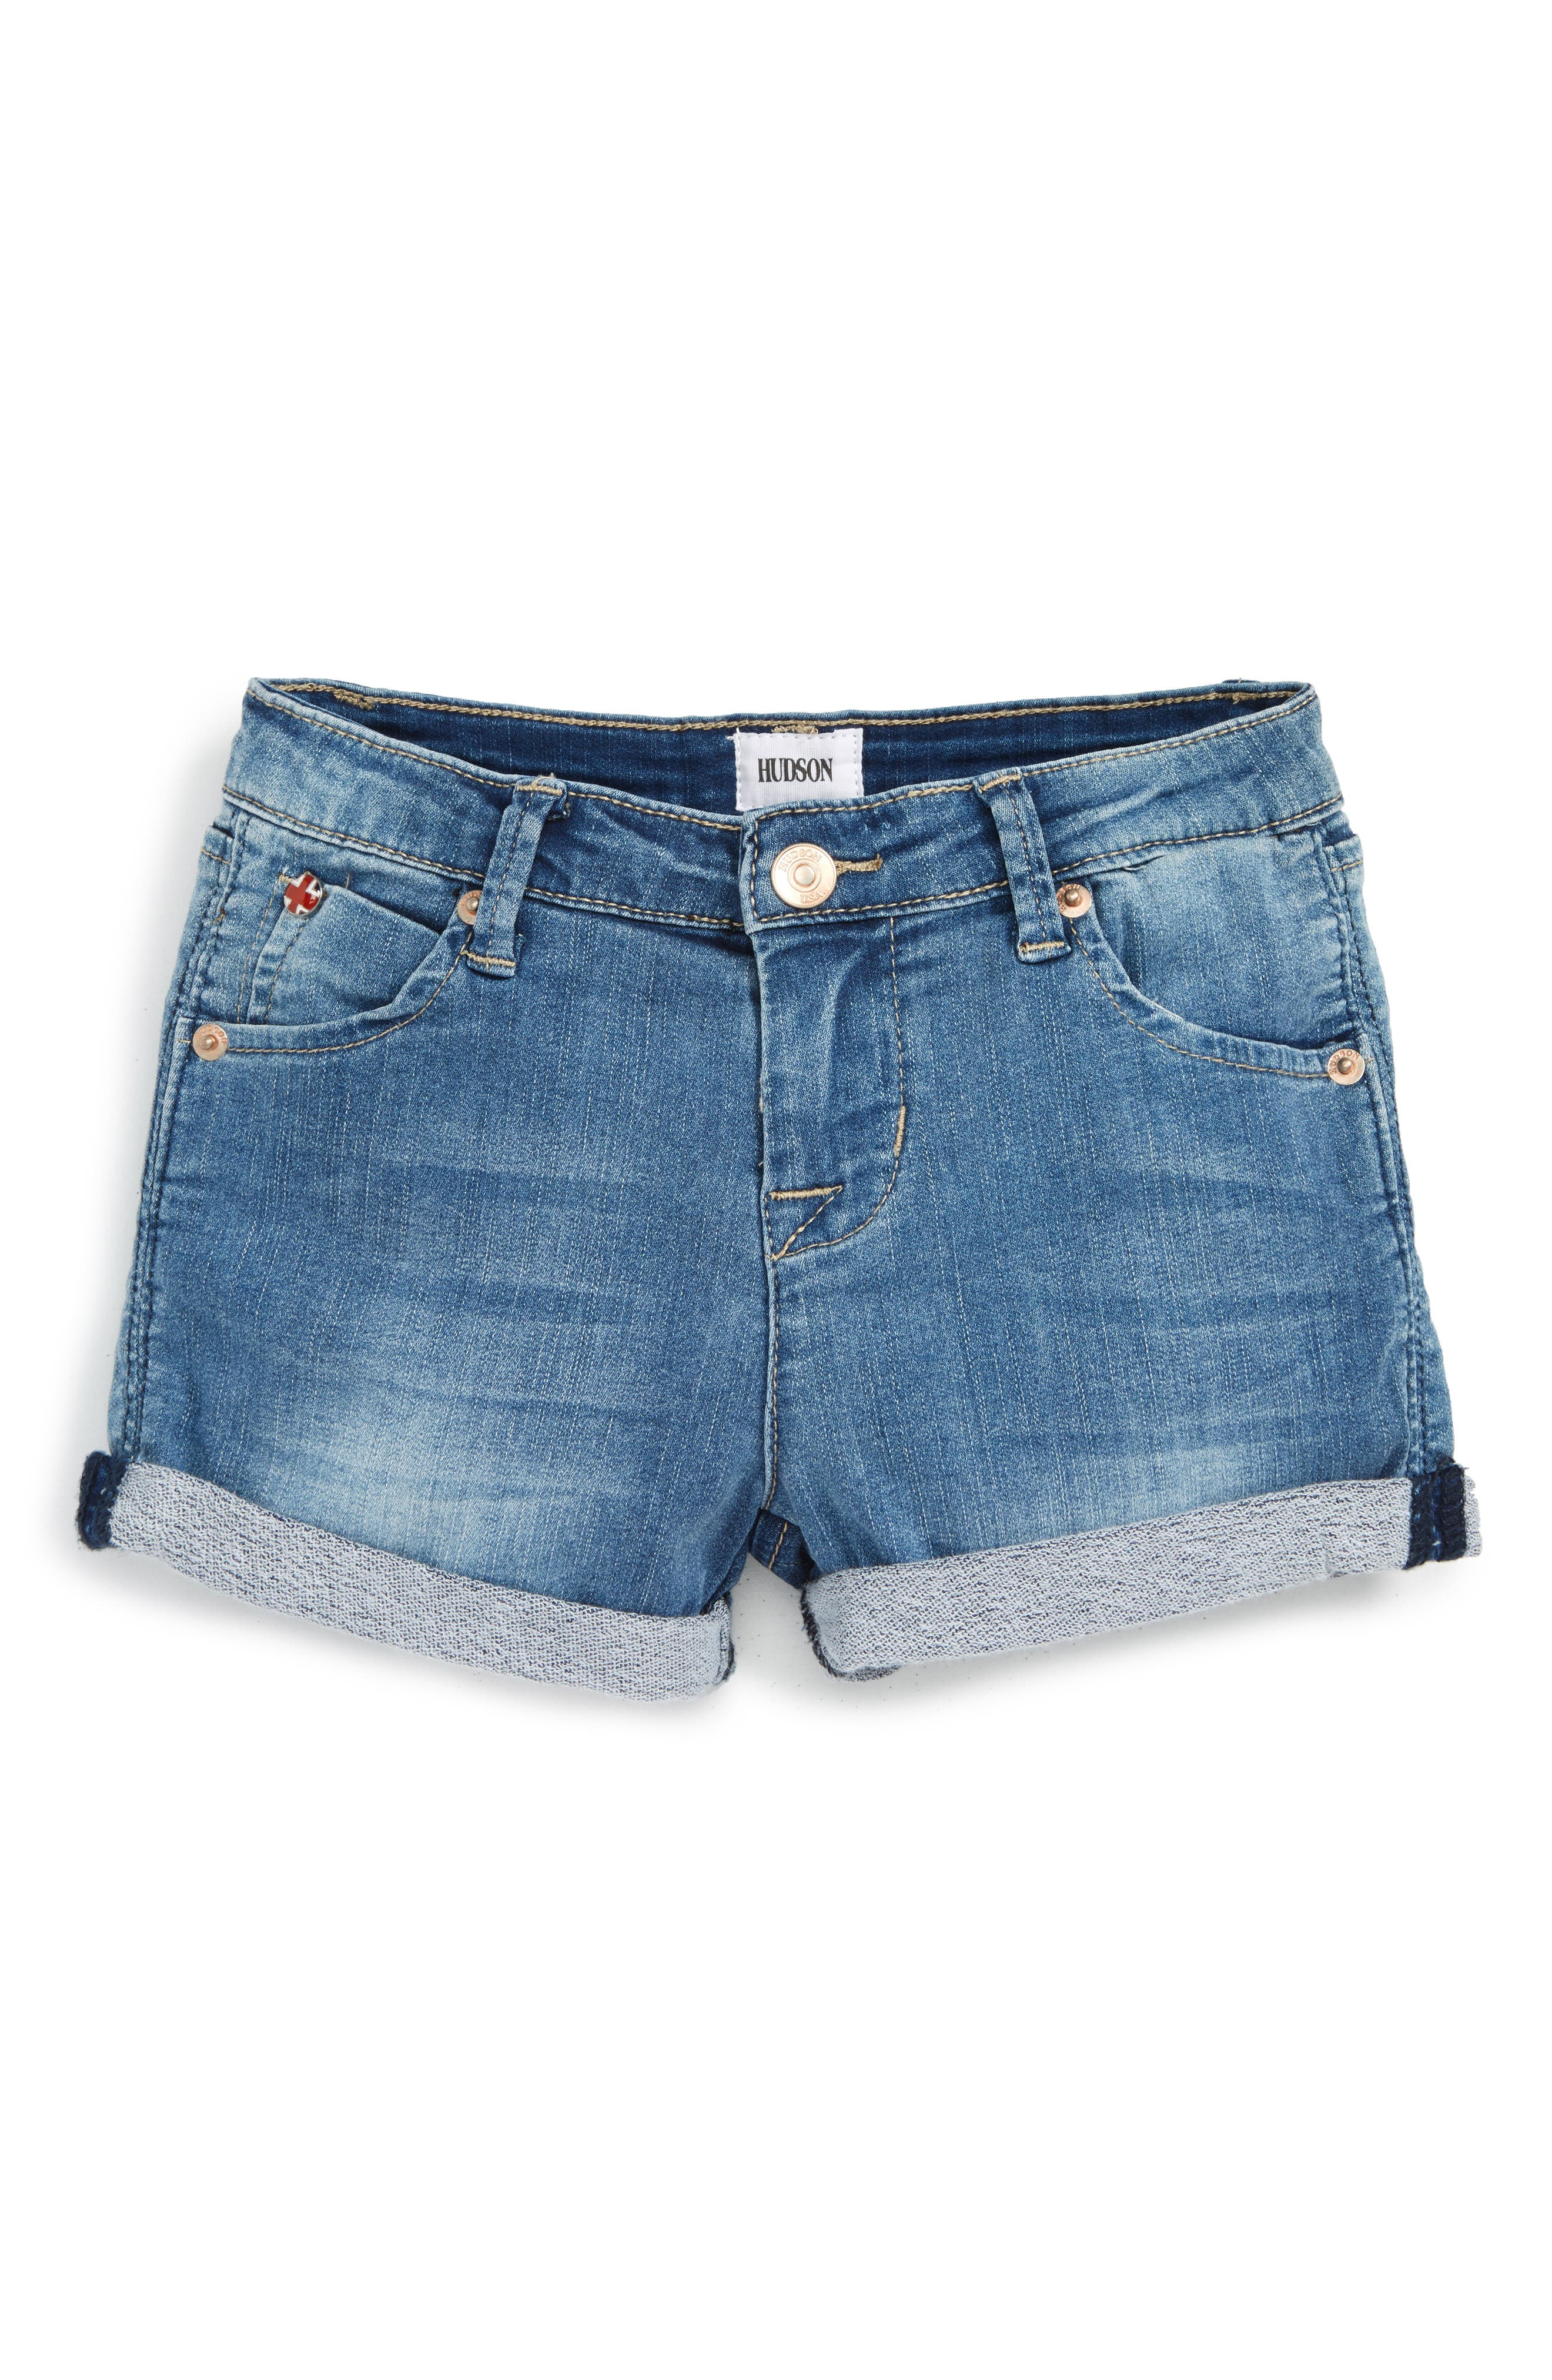 Collin Roll Cuff Denim Shorts,                             Alternate thumbnail 2, color,                             MEMORY